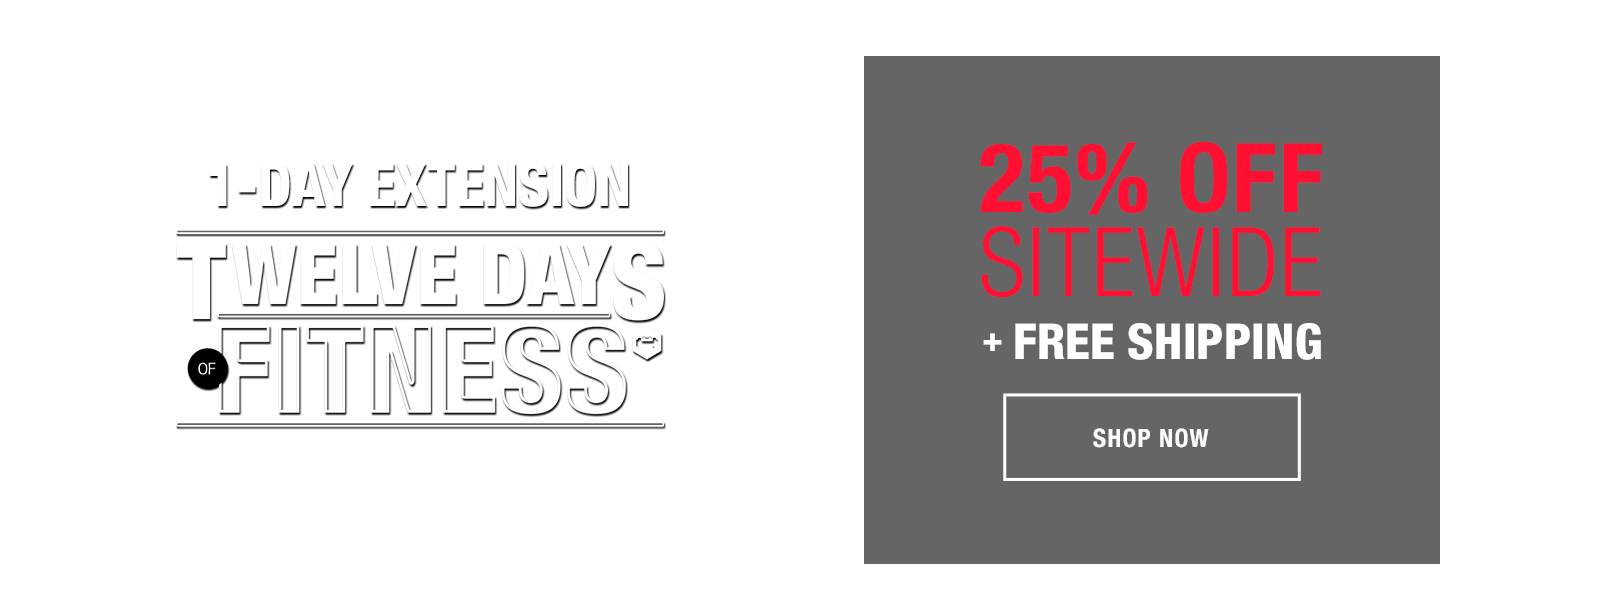 12 Days of Fitness Extension: 25% off Sitewide + free shipping!